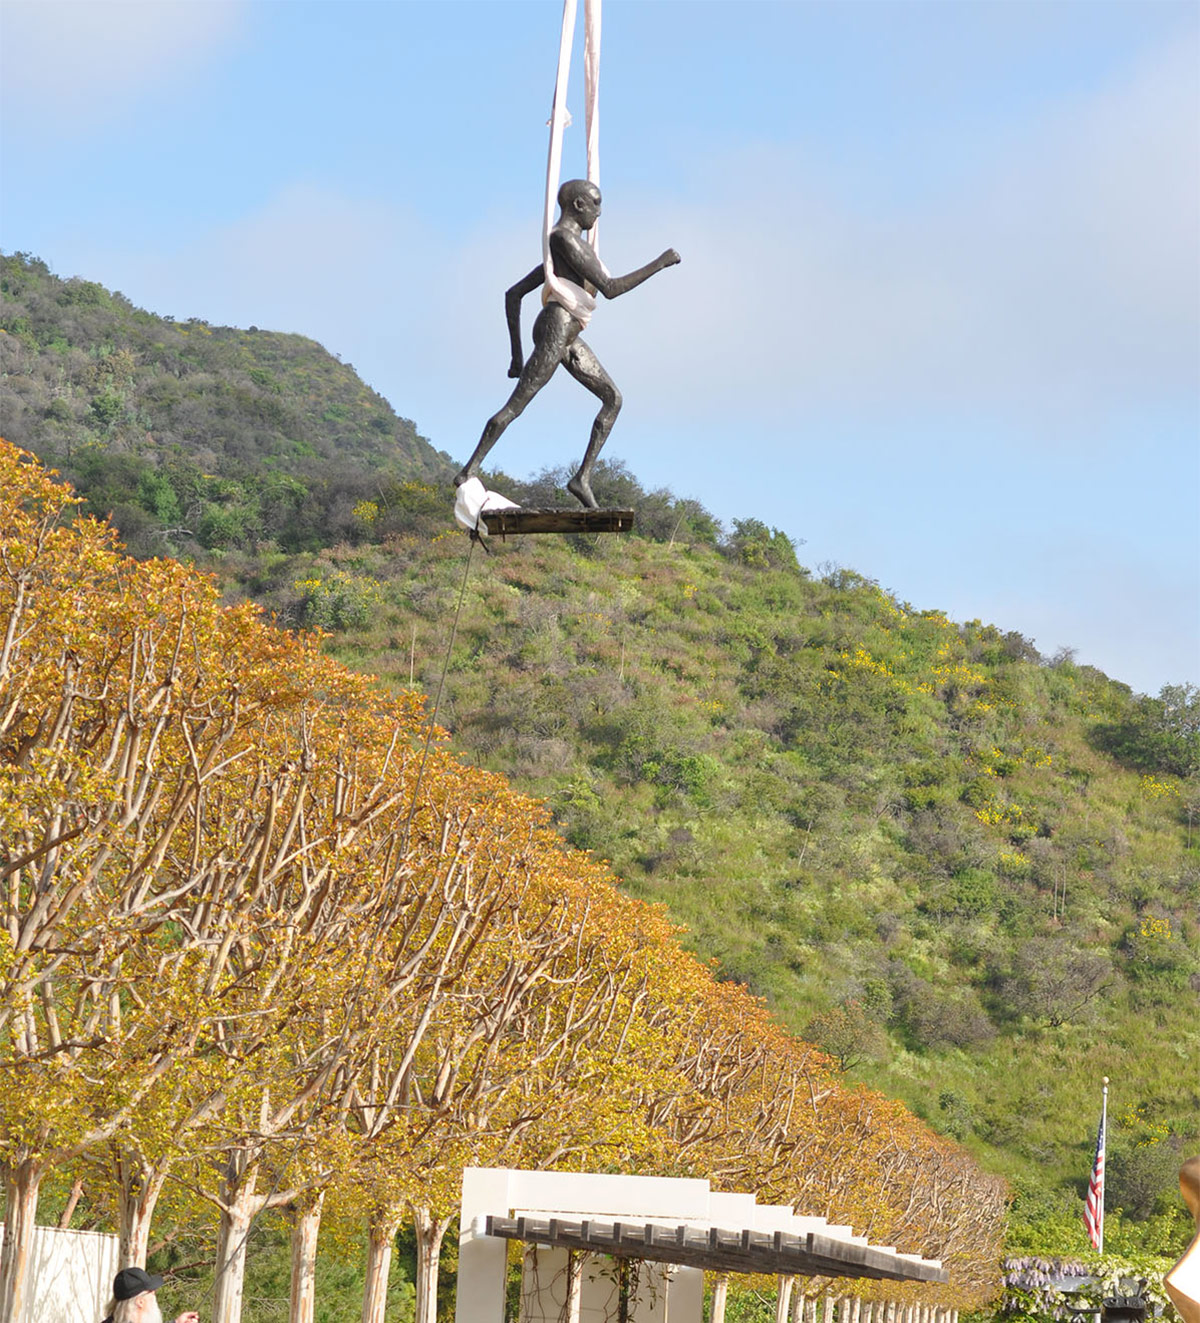 A bronze statue of a running man hangs from an aerial crane, attached by white fabric straps